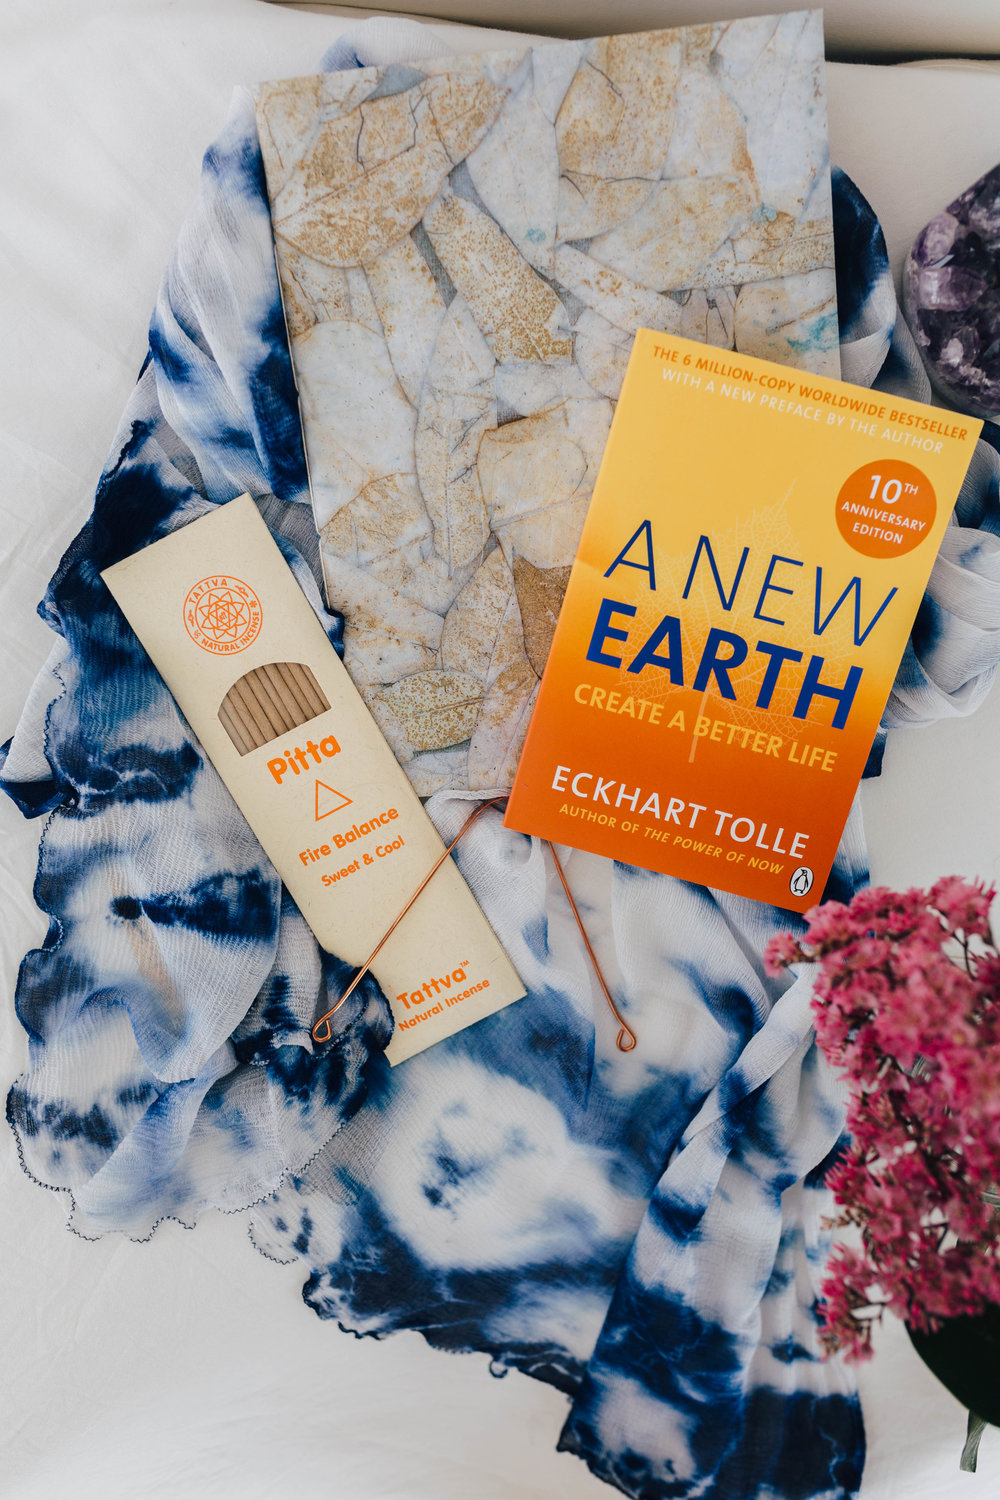 --- $100 gift ---- + Long silk georgette hand-dyed indigo scarf from India + 'A New Earth' book by Eckhart Tolle + A4 handmade paper notebook from Auroville, India + Pitta incense + Copper Tongue Scraper